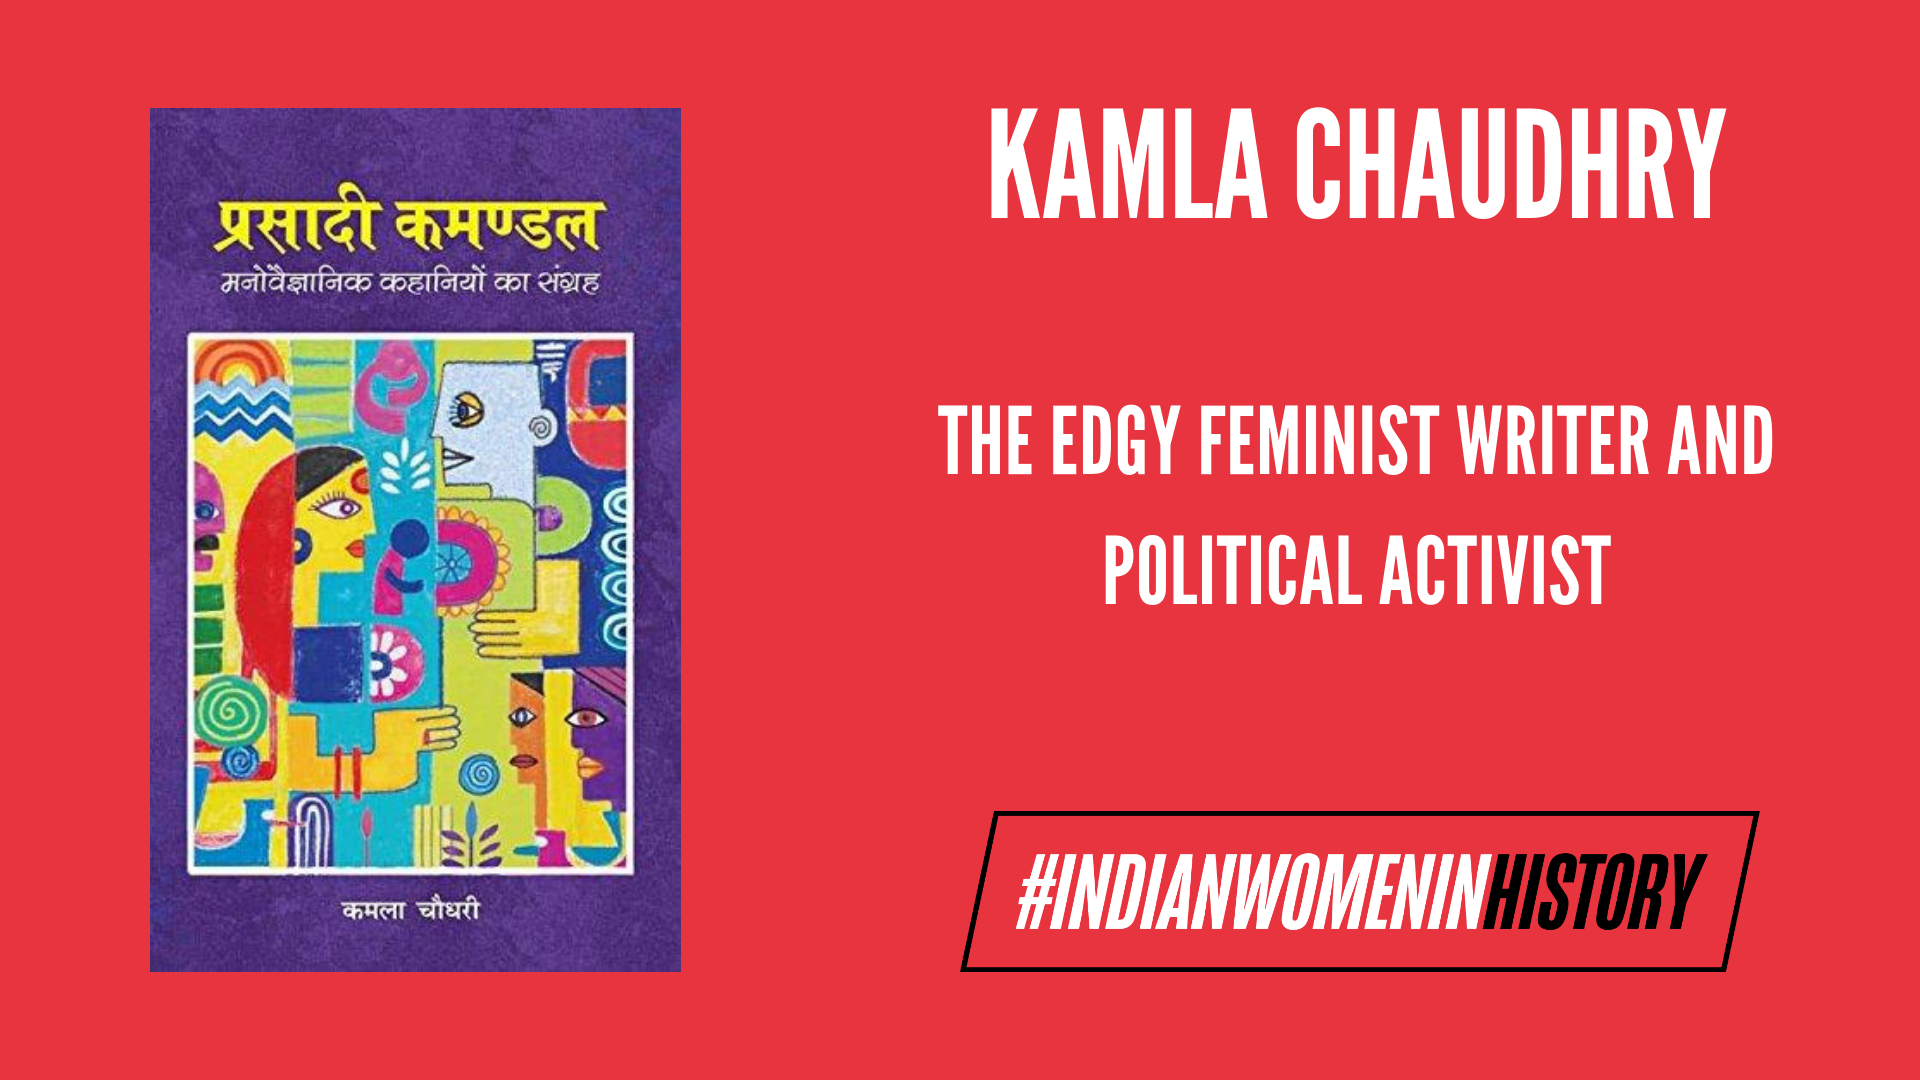 Kamla Chaudhry: The Edgy Feminist Writer And Political Activist| #IndianWomenInHistory